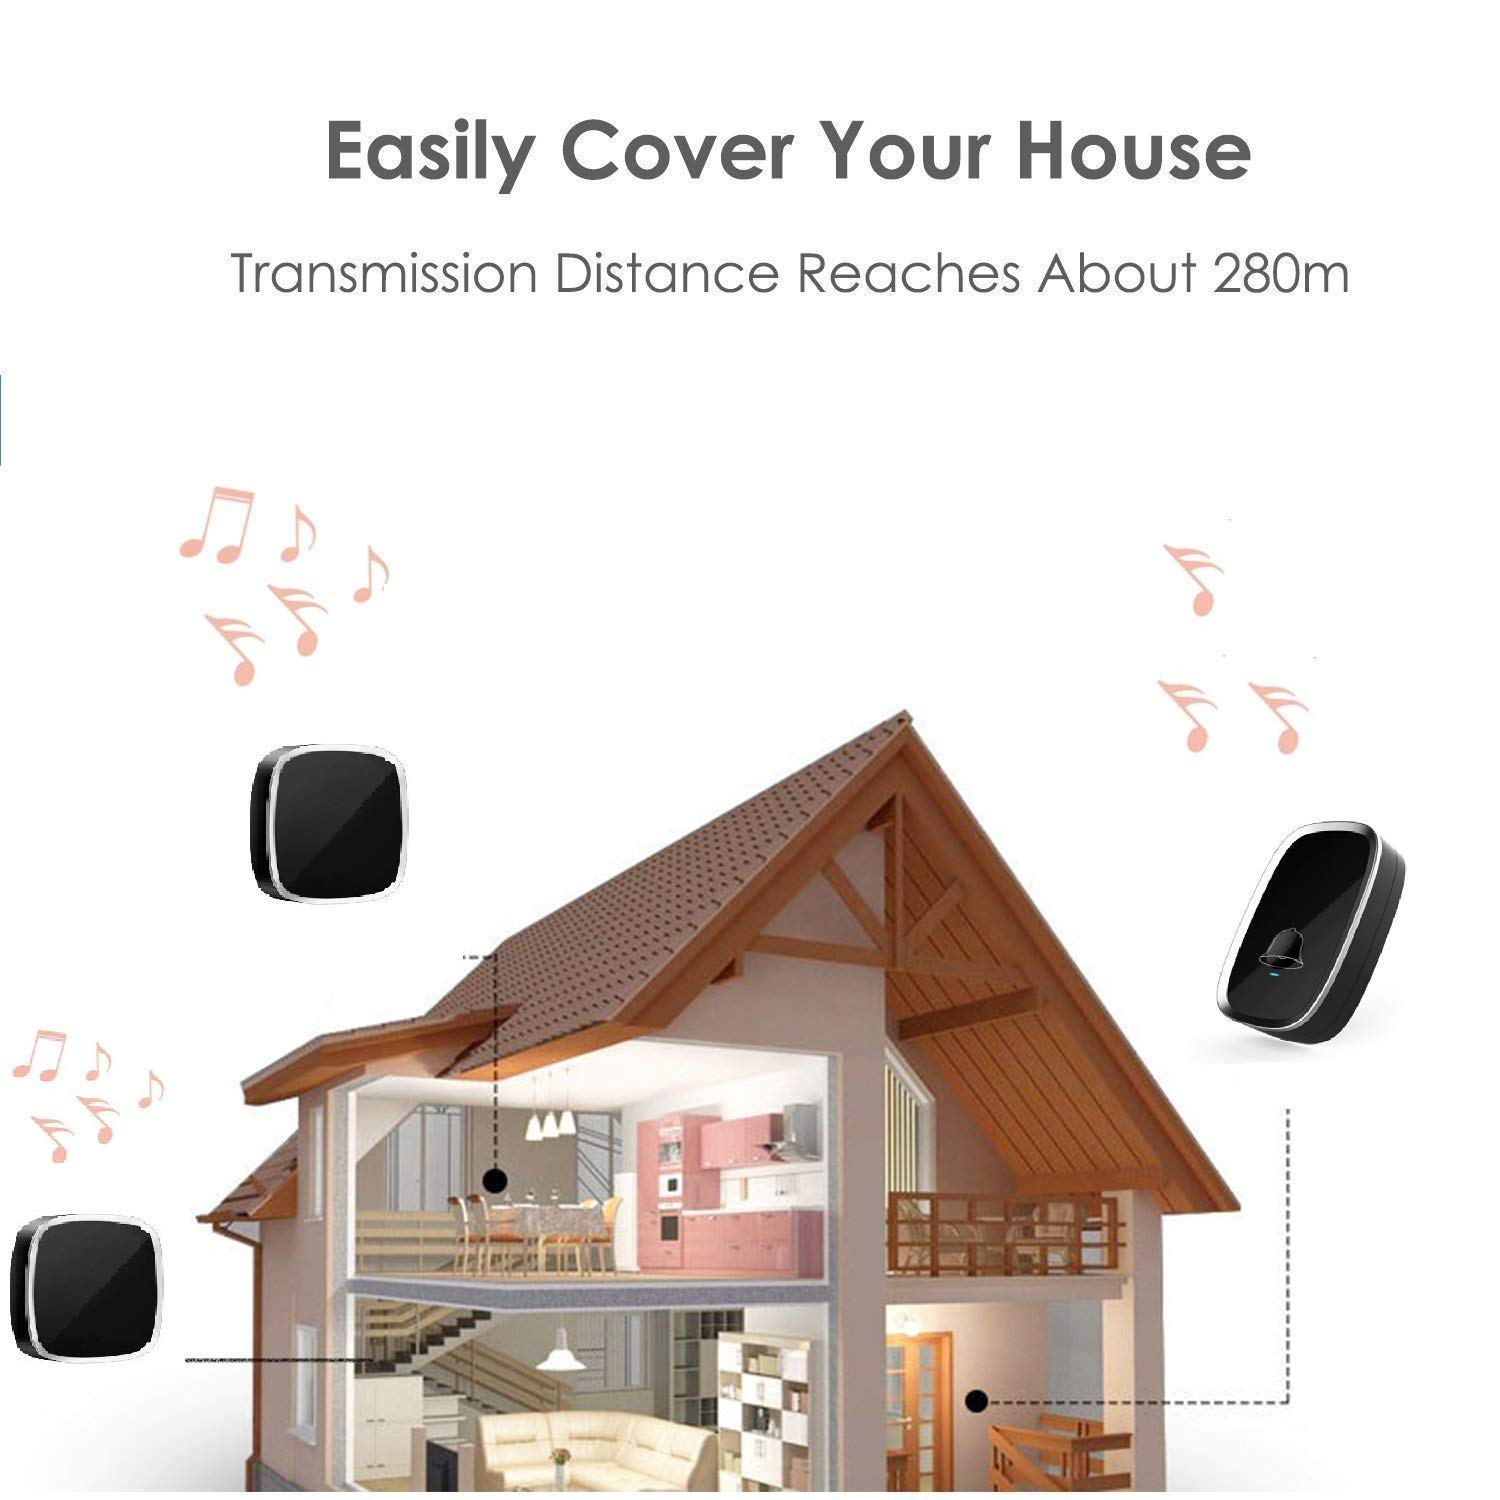 Wireless Doorbell, Waterproof Door Bell, Twin Wall Plug-in Cordless Chime, 300m/1000ft Range, 36 Melodies to Choose, 4 Level Volume & Flashing LED Light